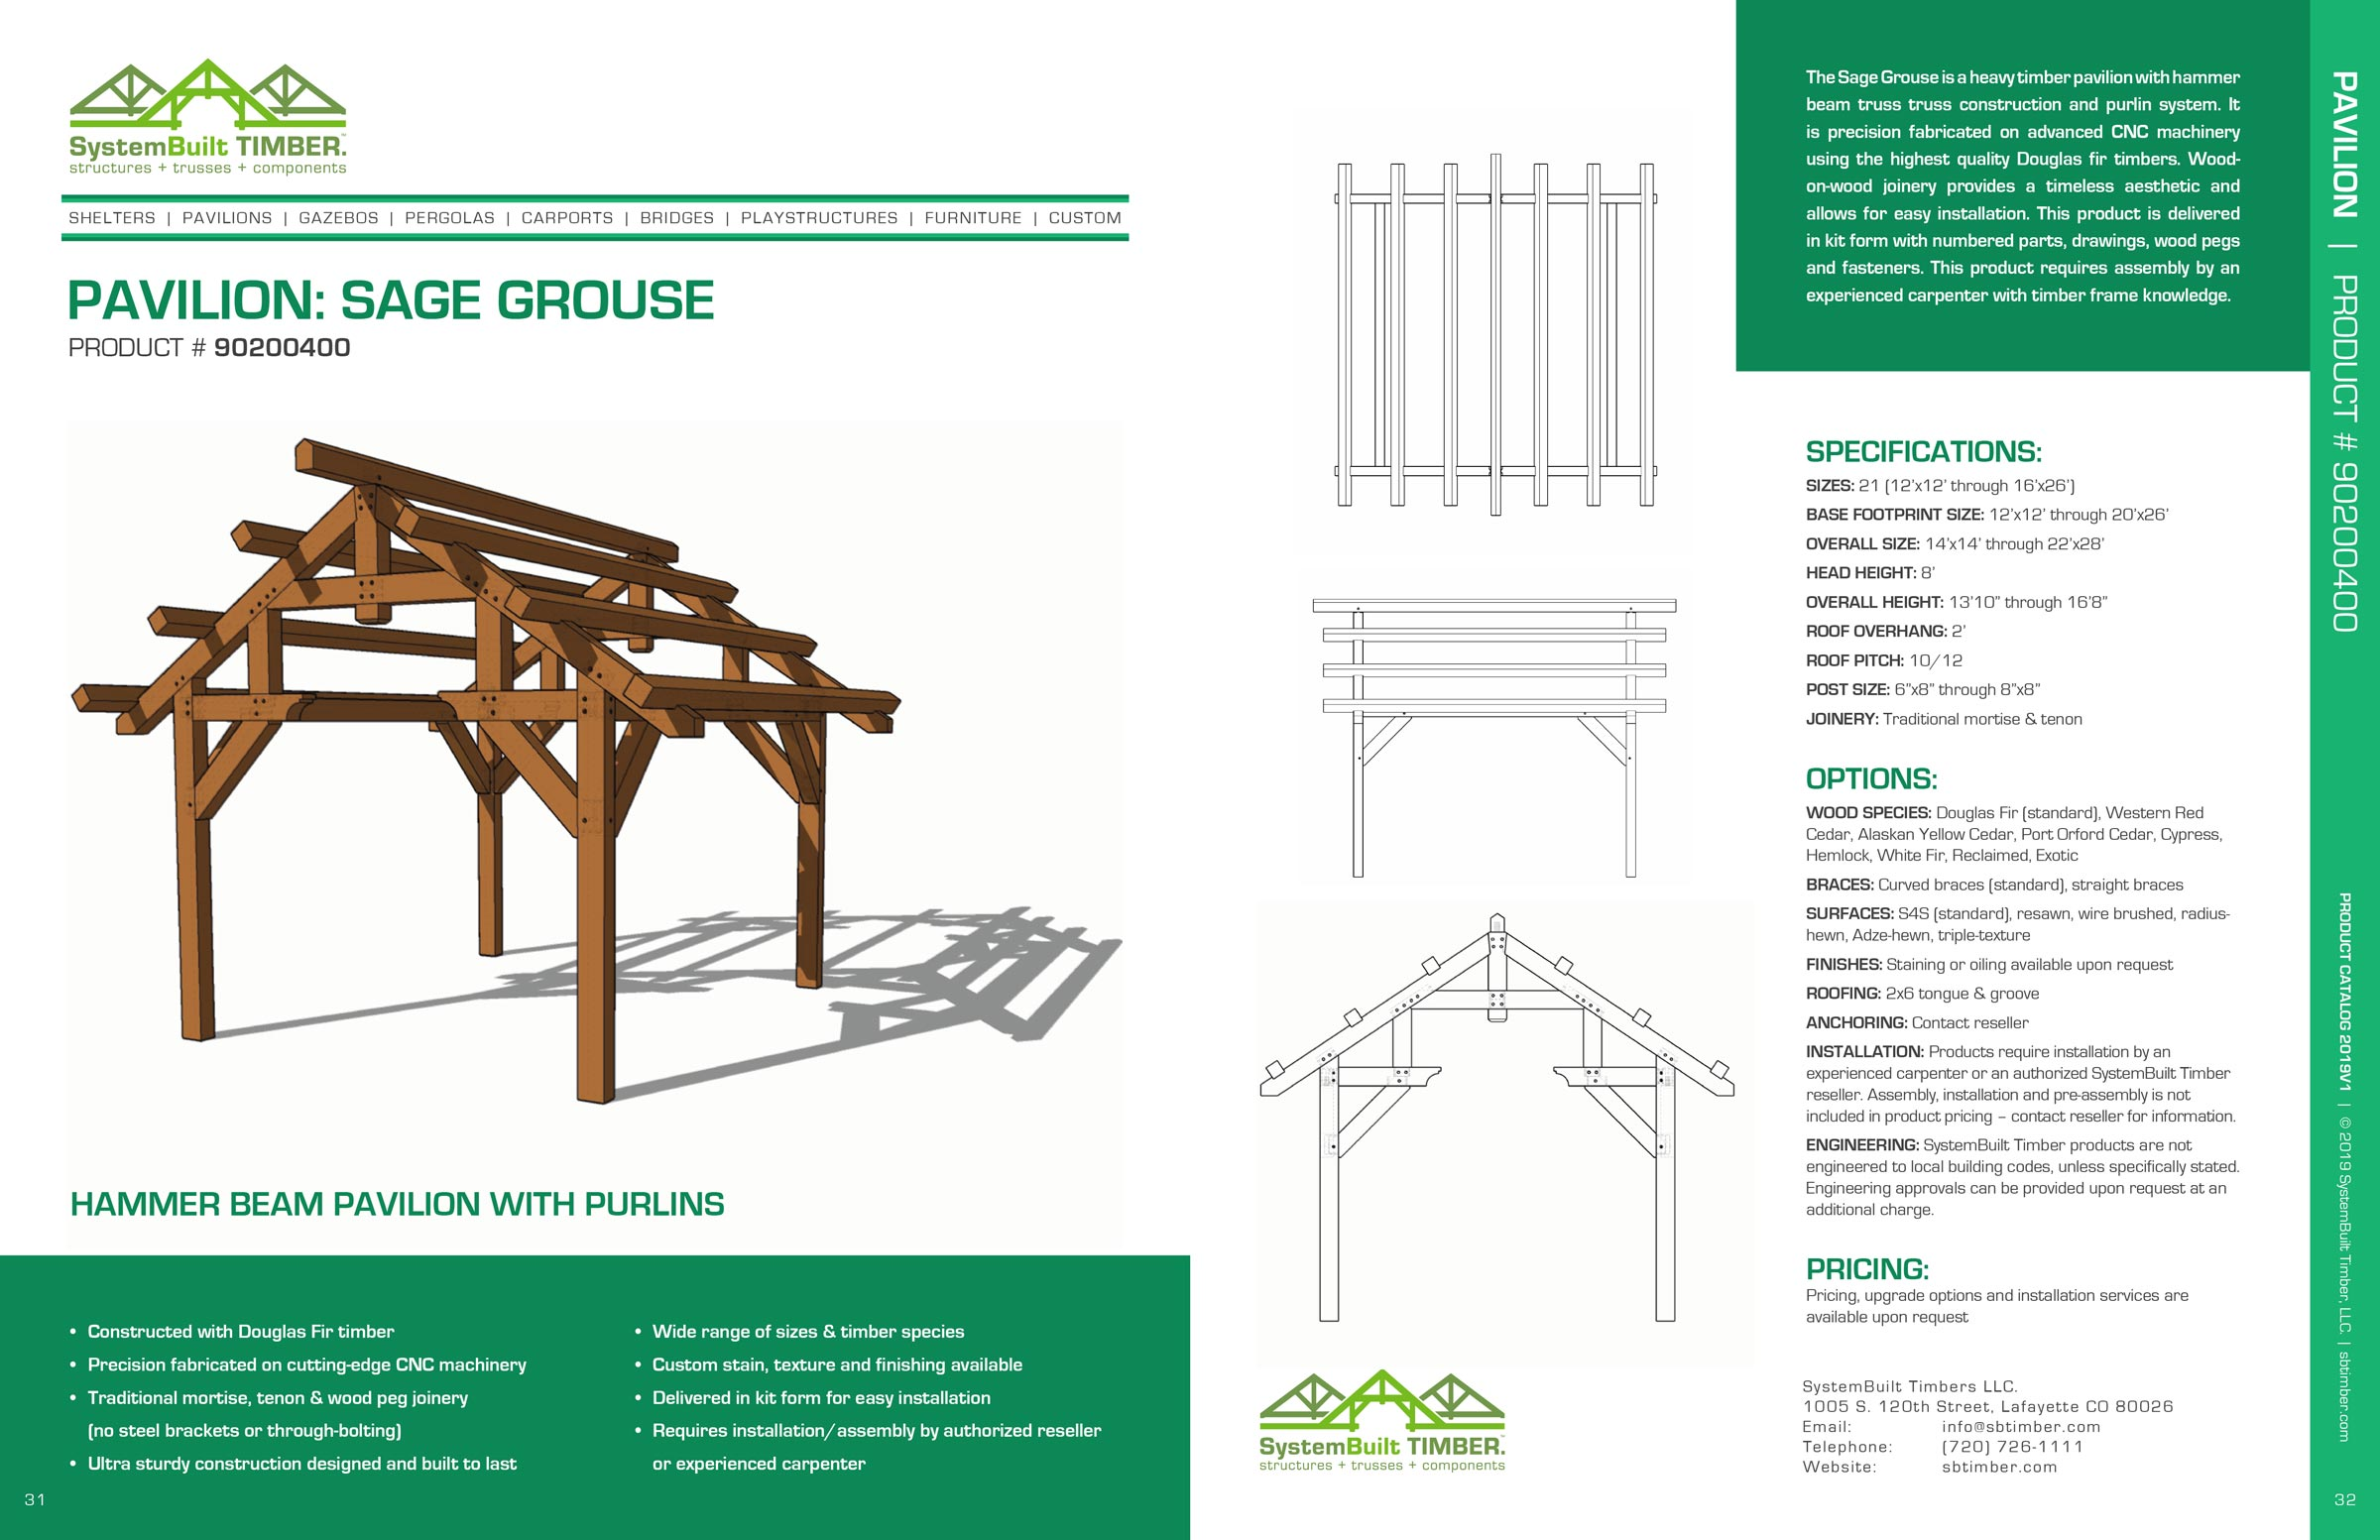 Pavilions – SystemBuilt Timber